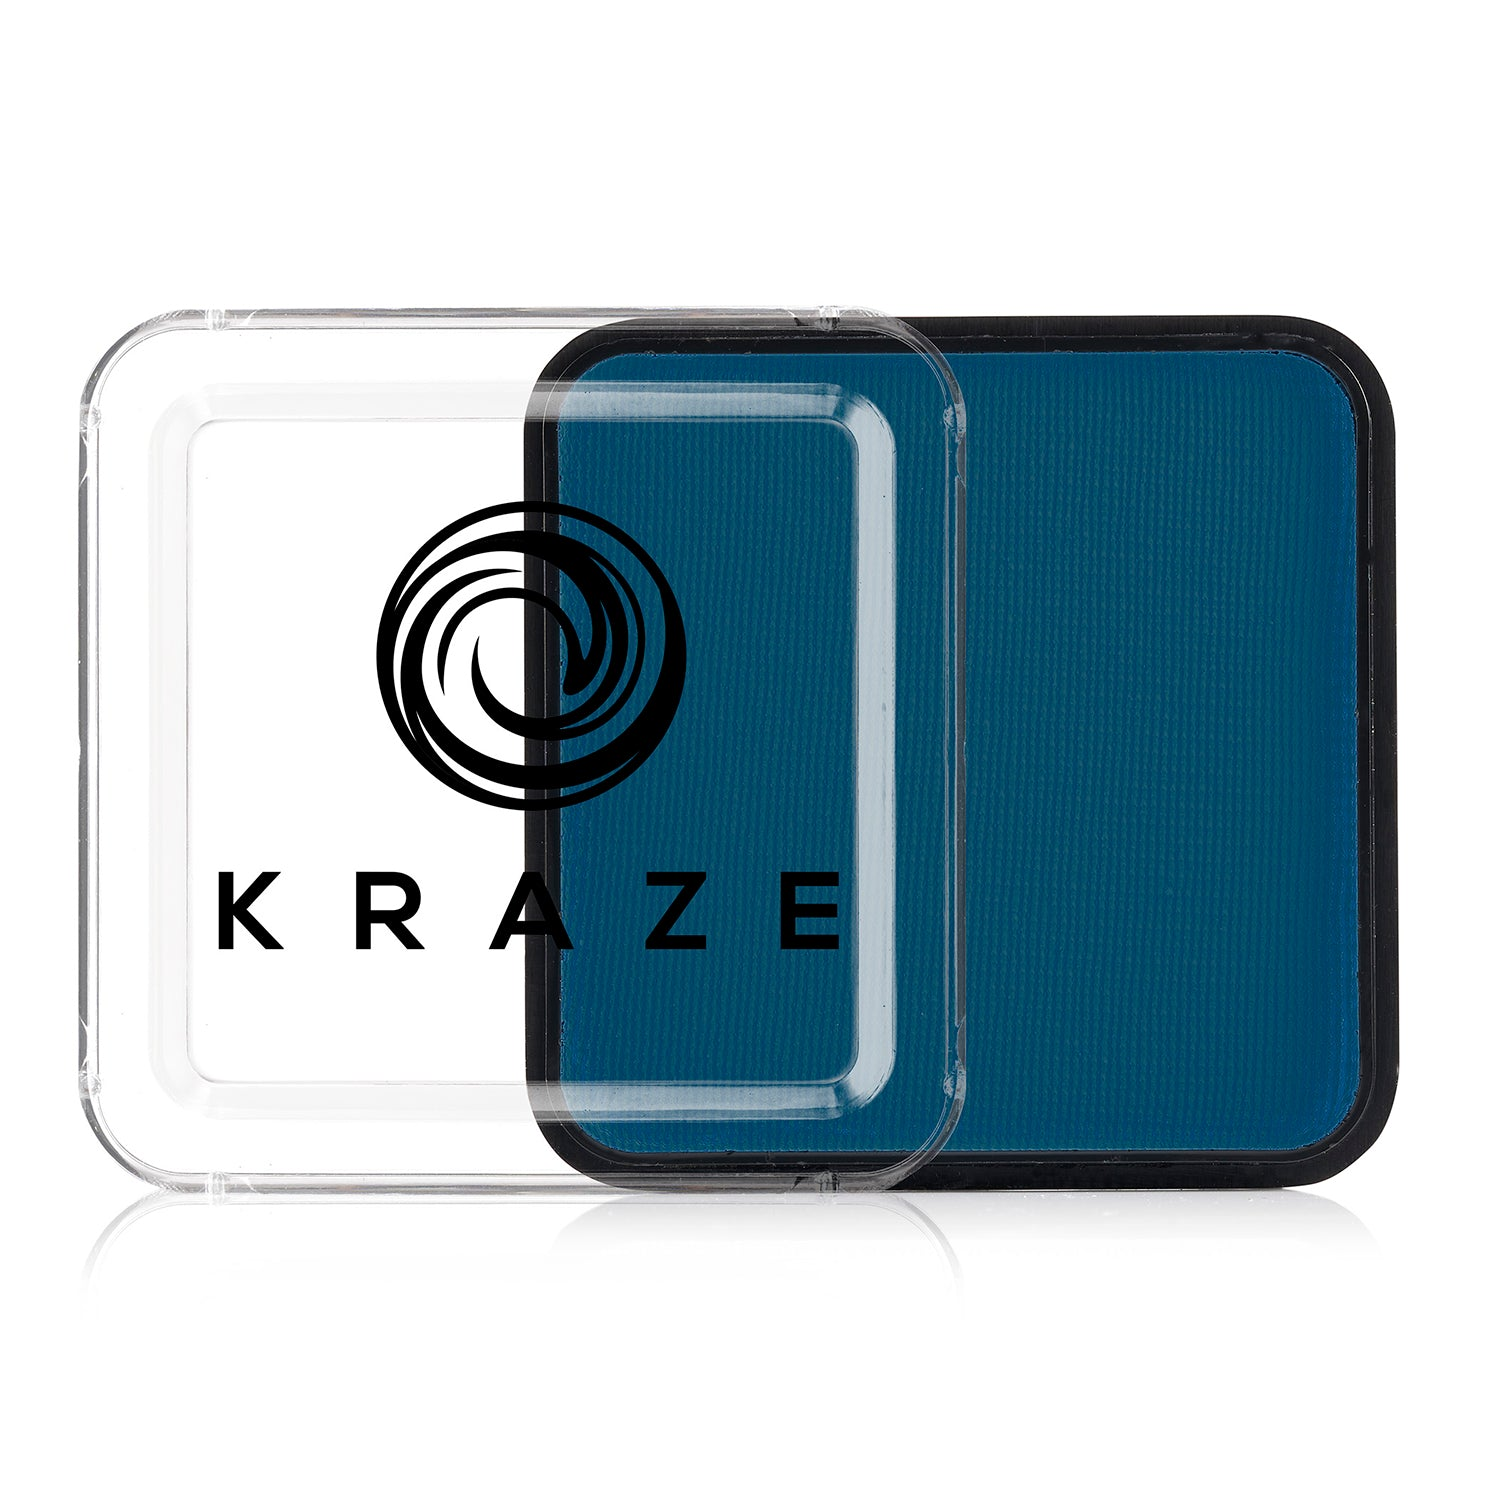 Kraze FX Face Paint - 25 gm - Metallic Blue